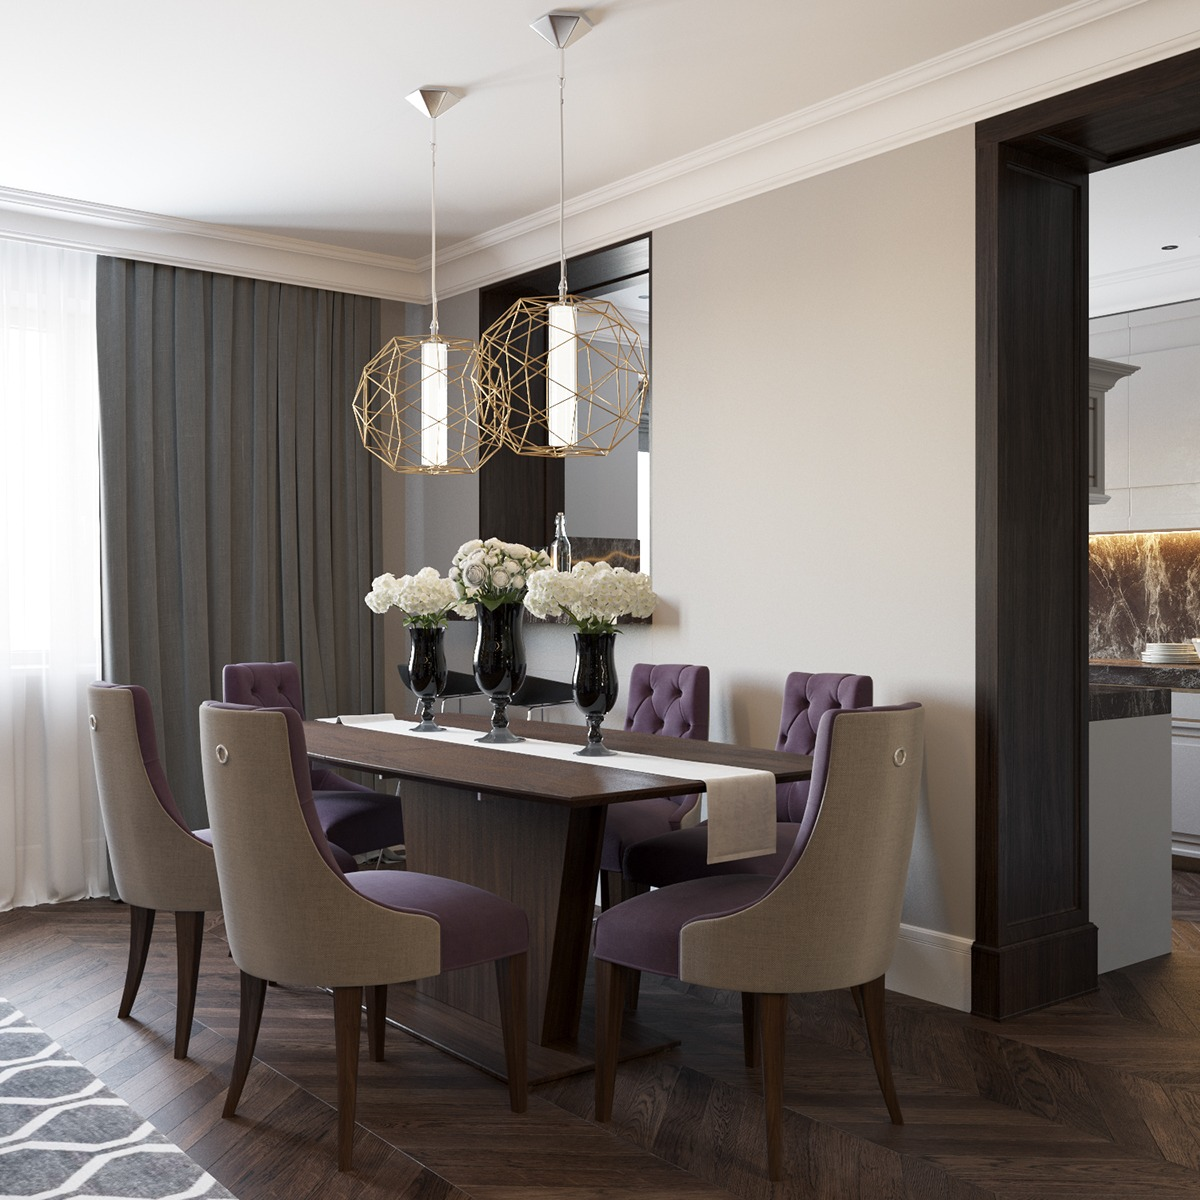 Home Deco: 2 Beautiful Home Interiors In Art Deco Style